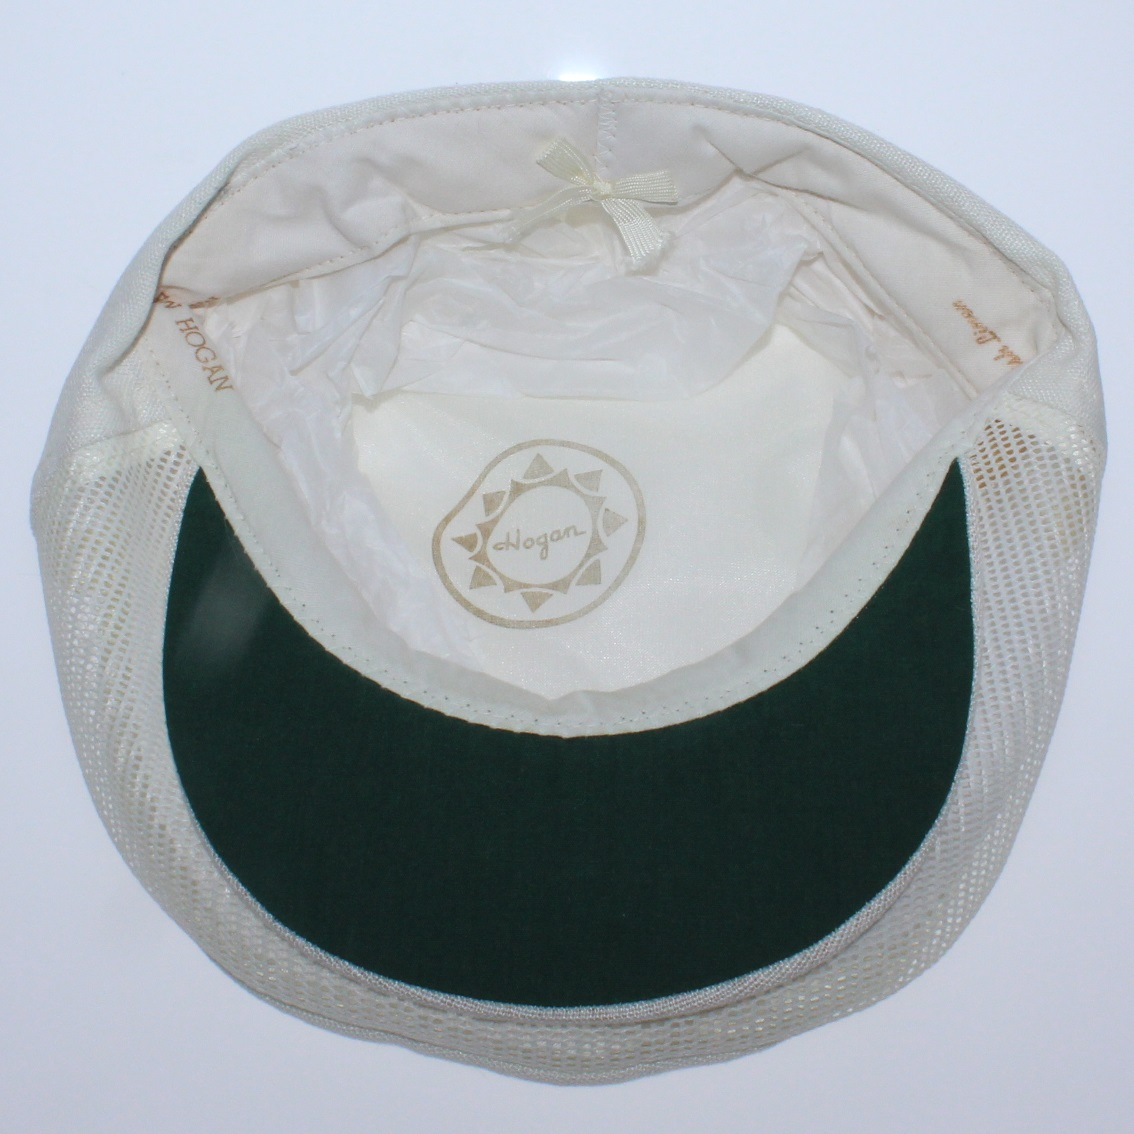 ... Ben Hogan Personal Signature White Linen Hat - Made Expressly for Ben  Hogan Tag   Original ... c2eec99a3e5